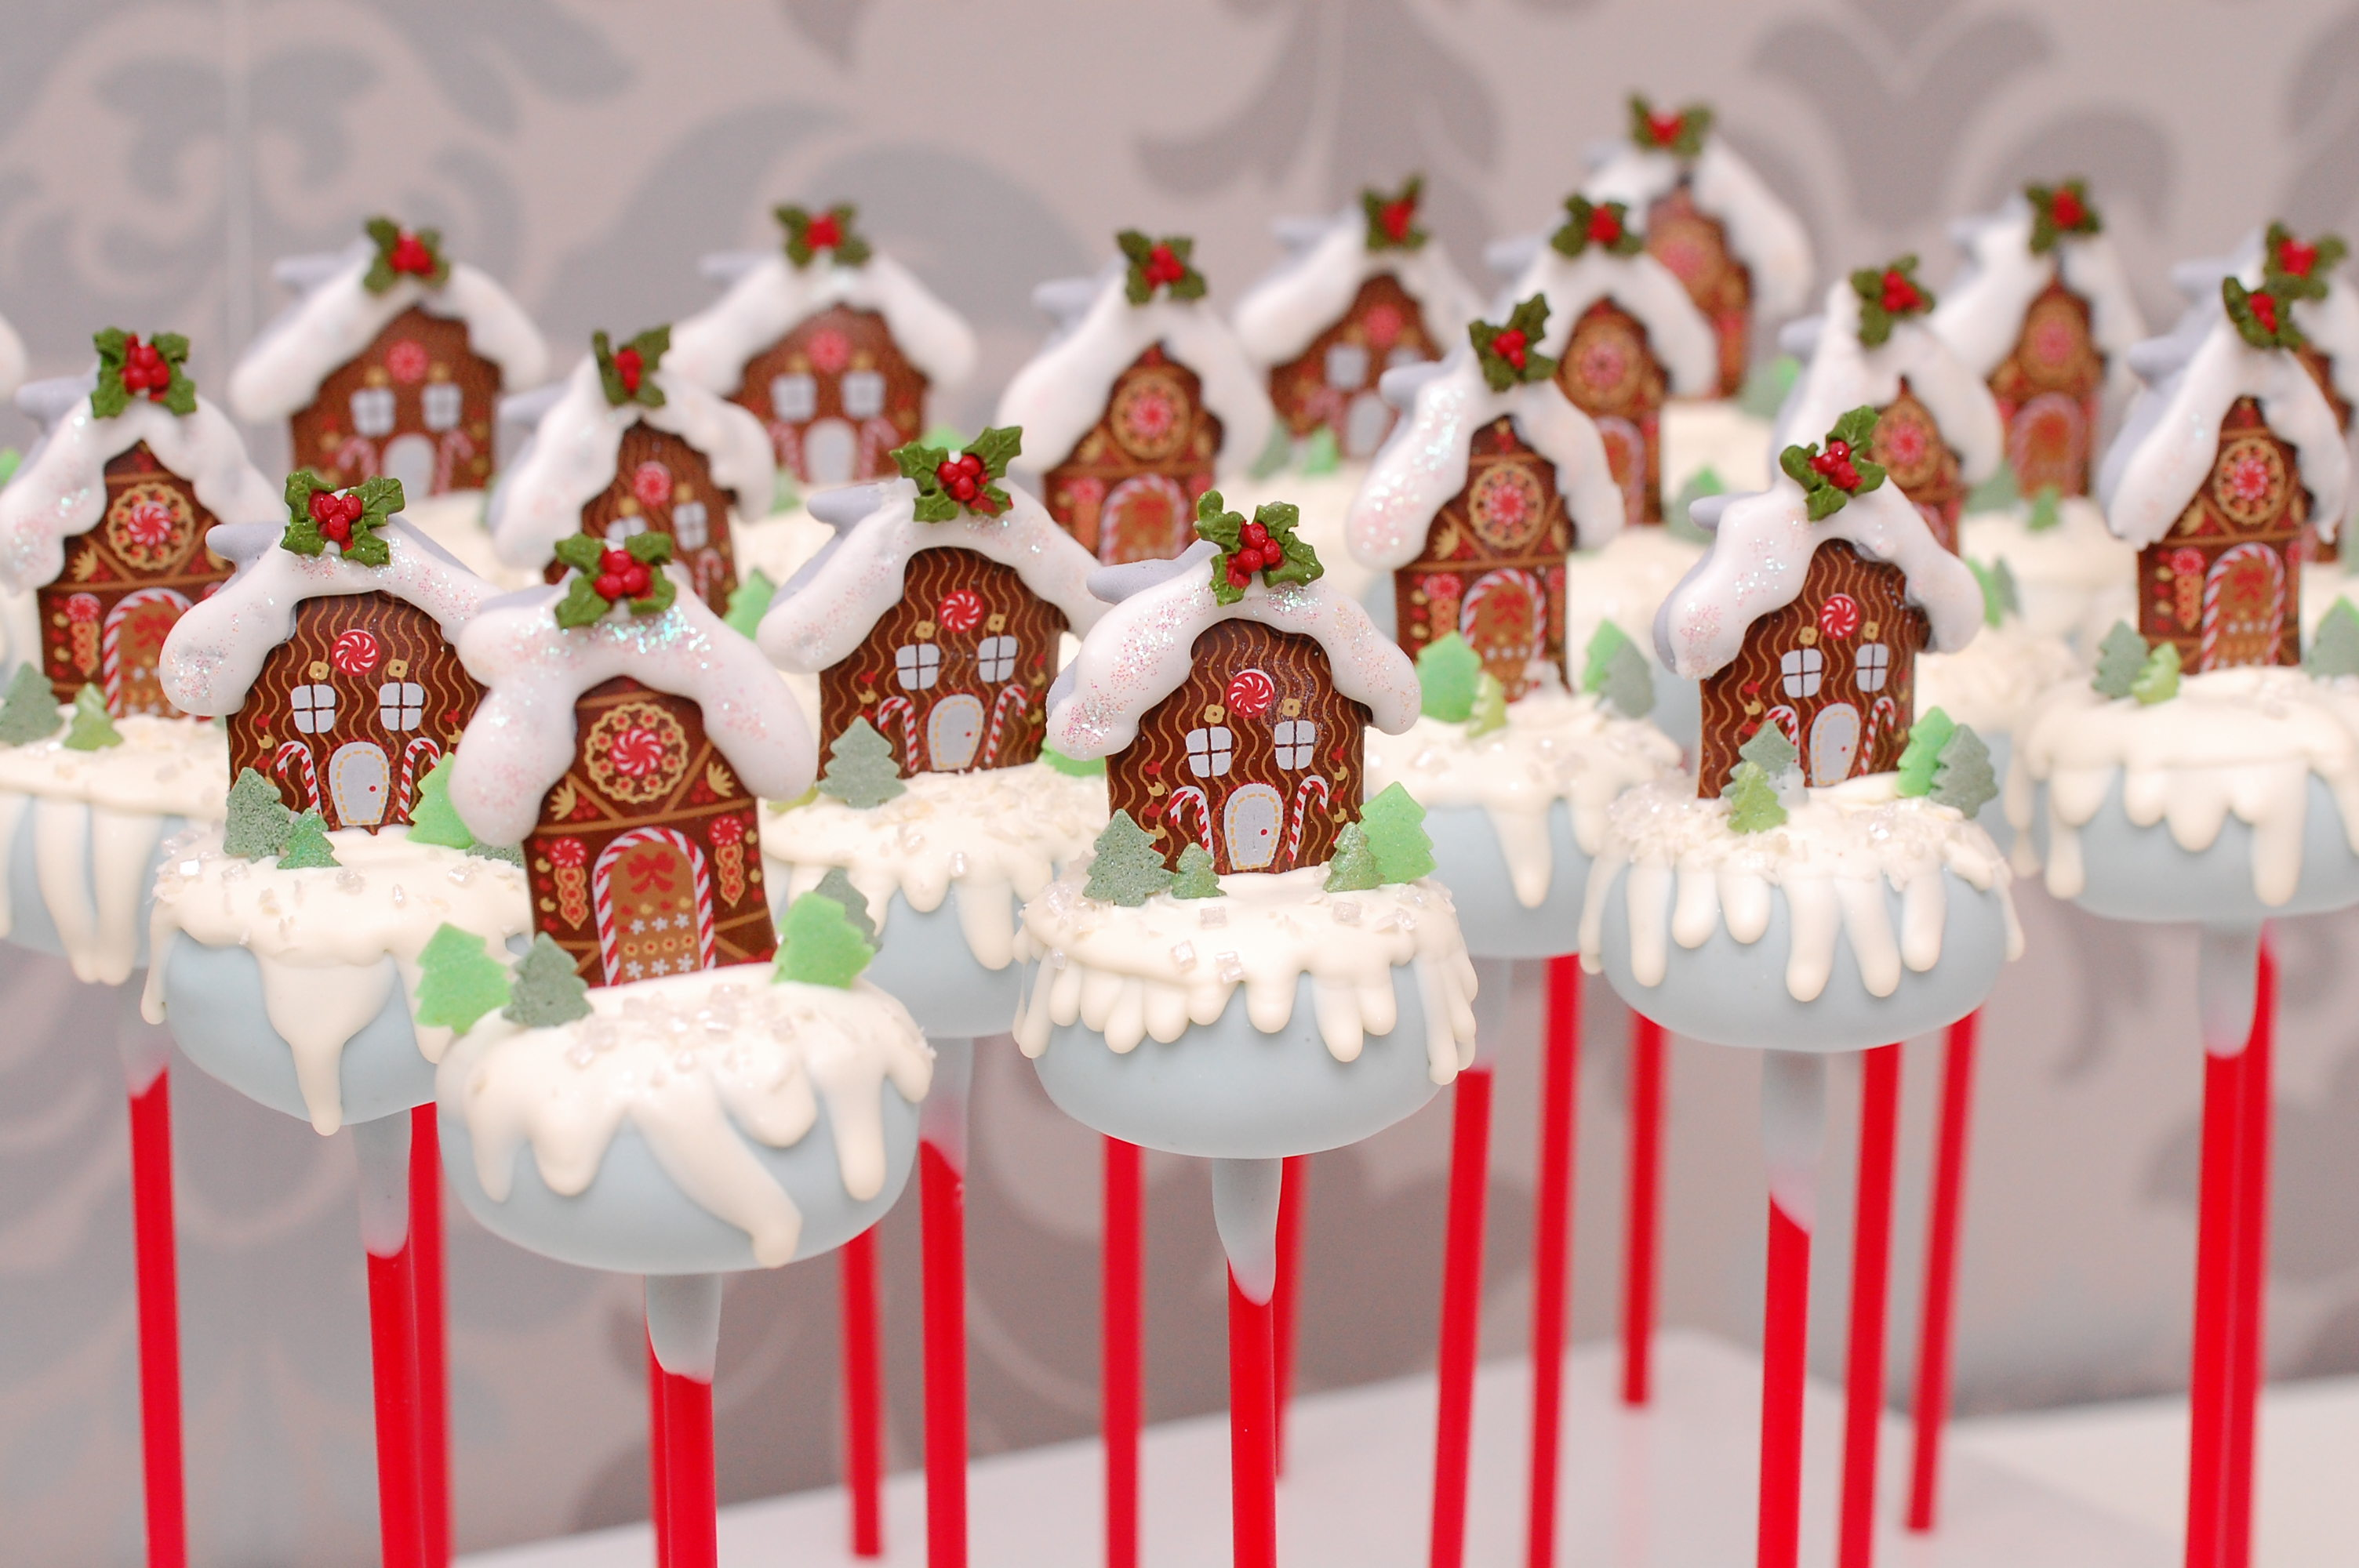 Gingerbread house cake pops decorated with fondant